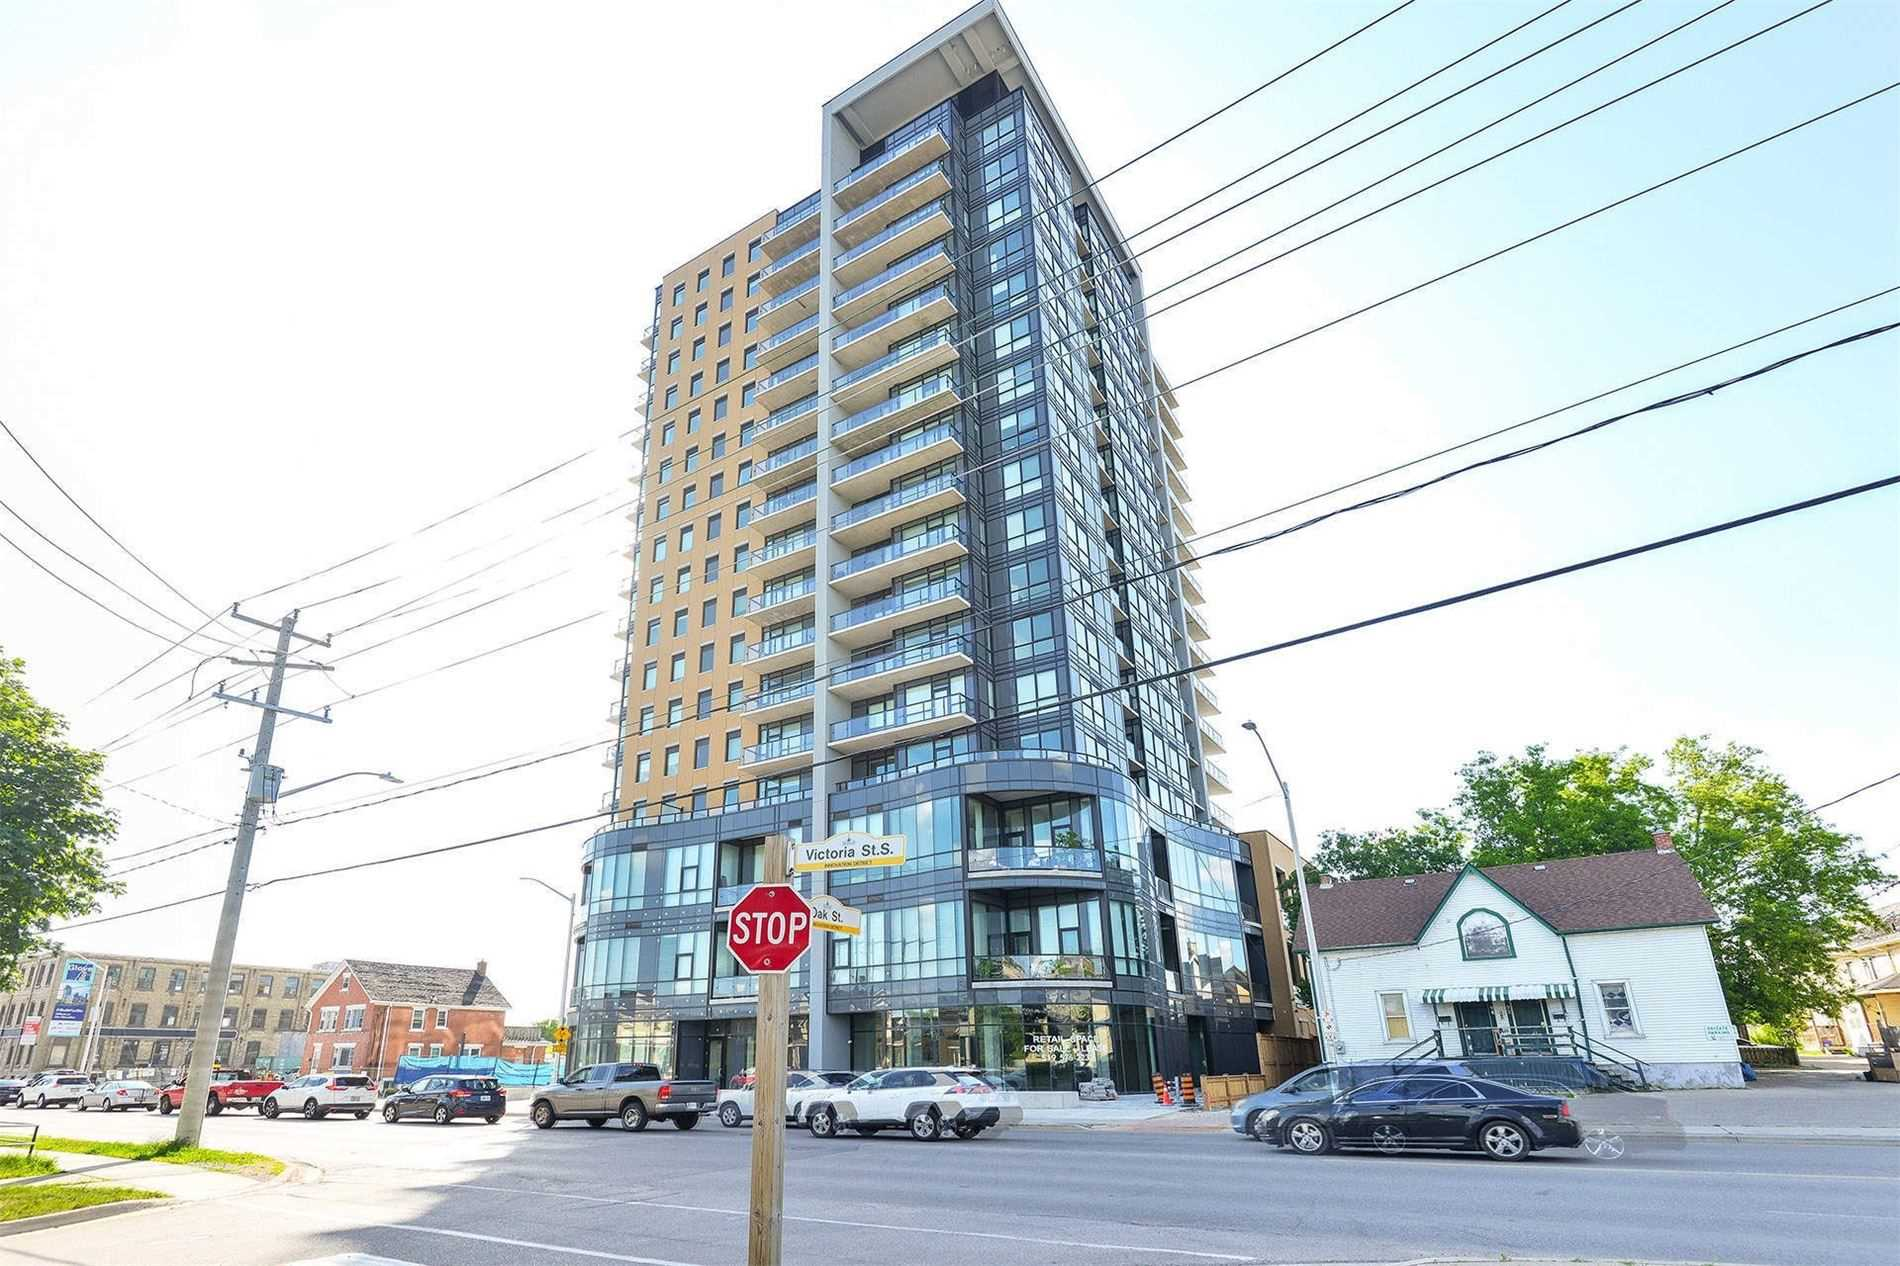 pictures of 100 Garment St, Kitchener N2G0C3